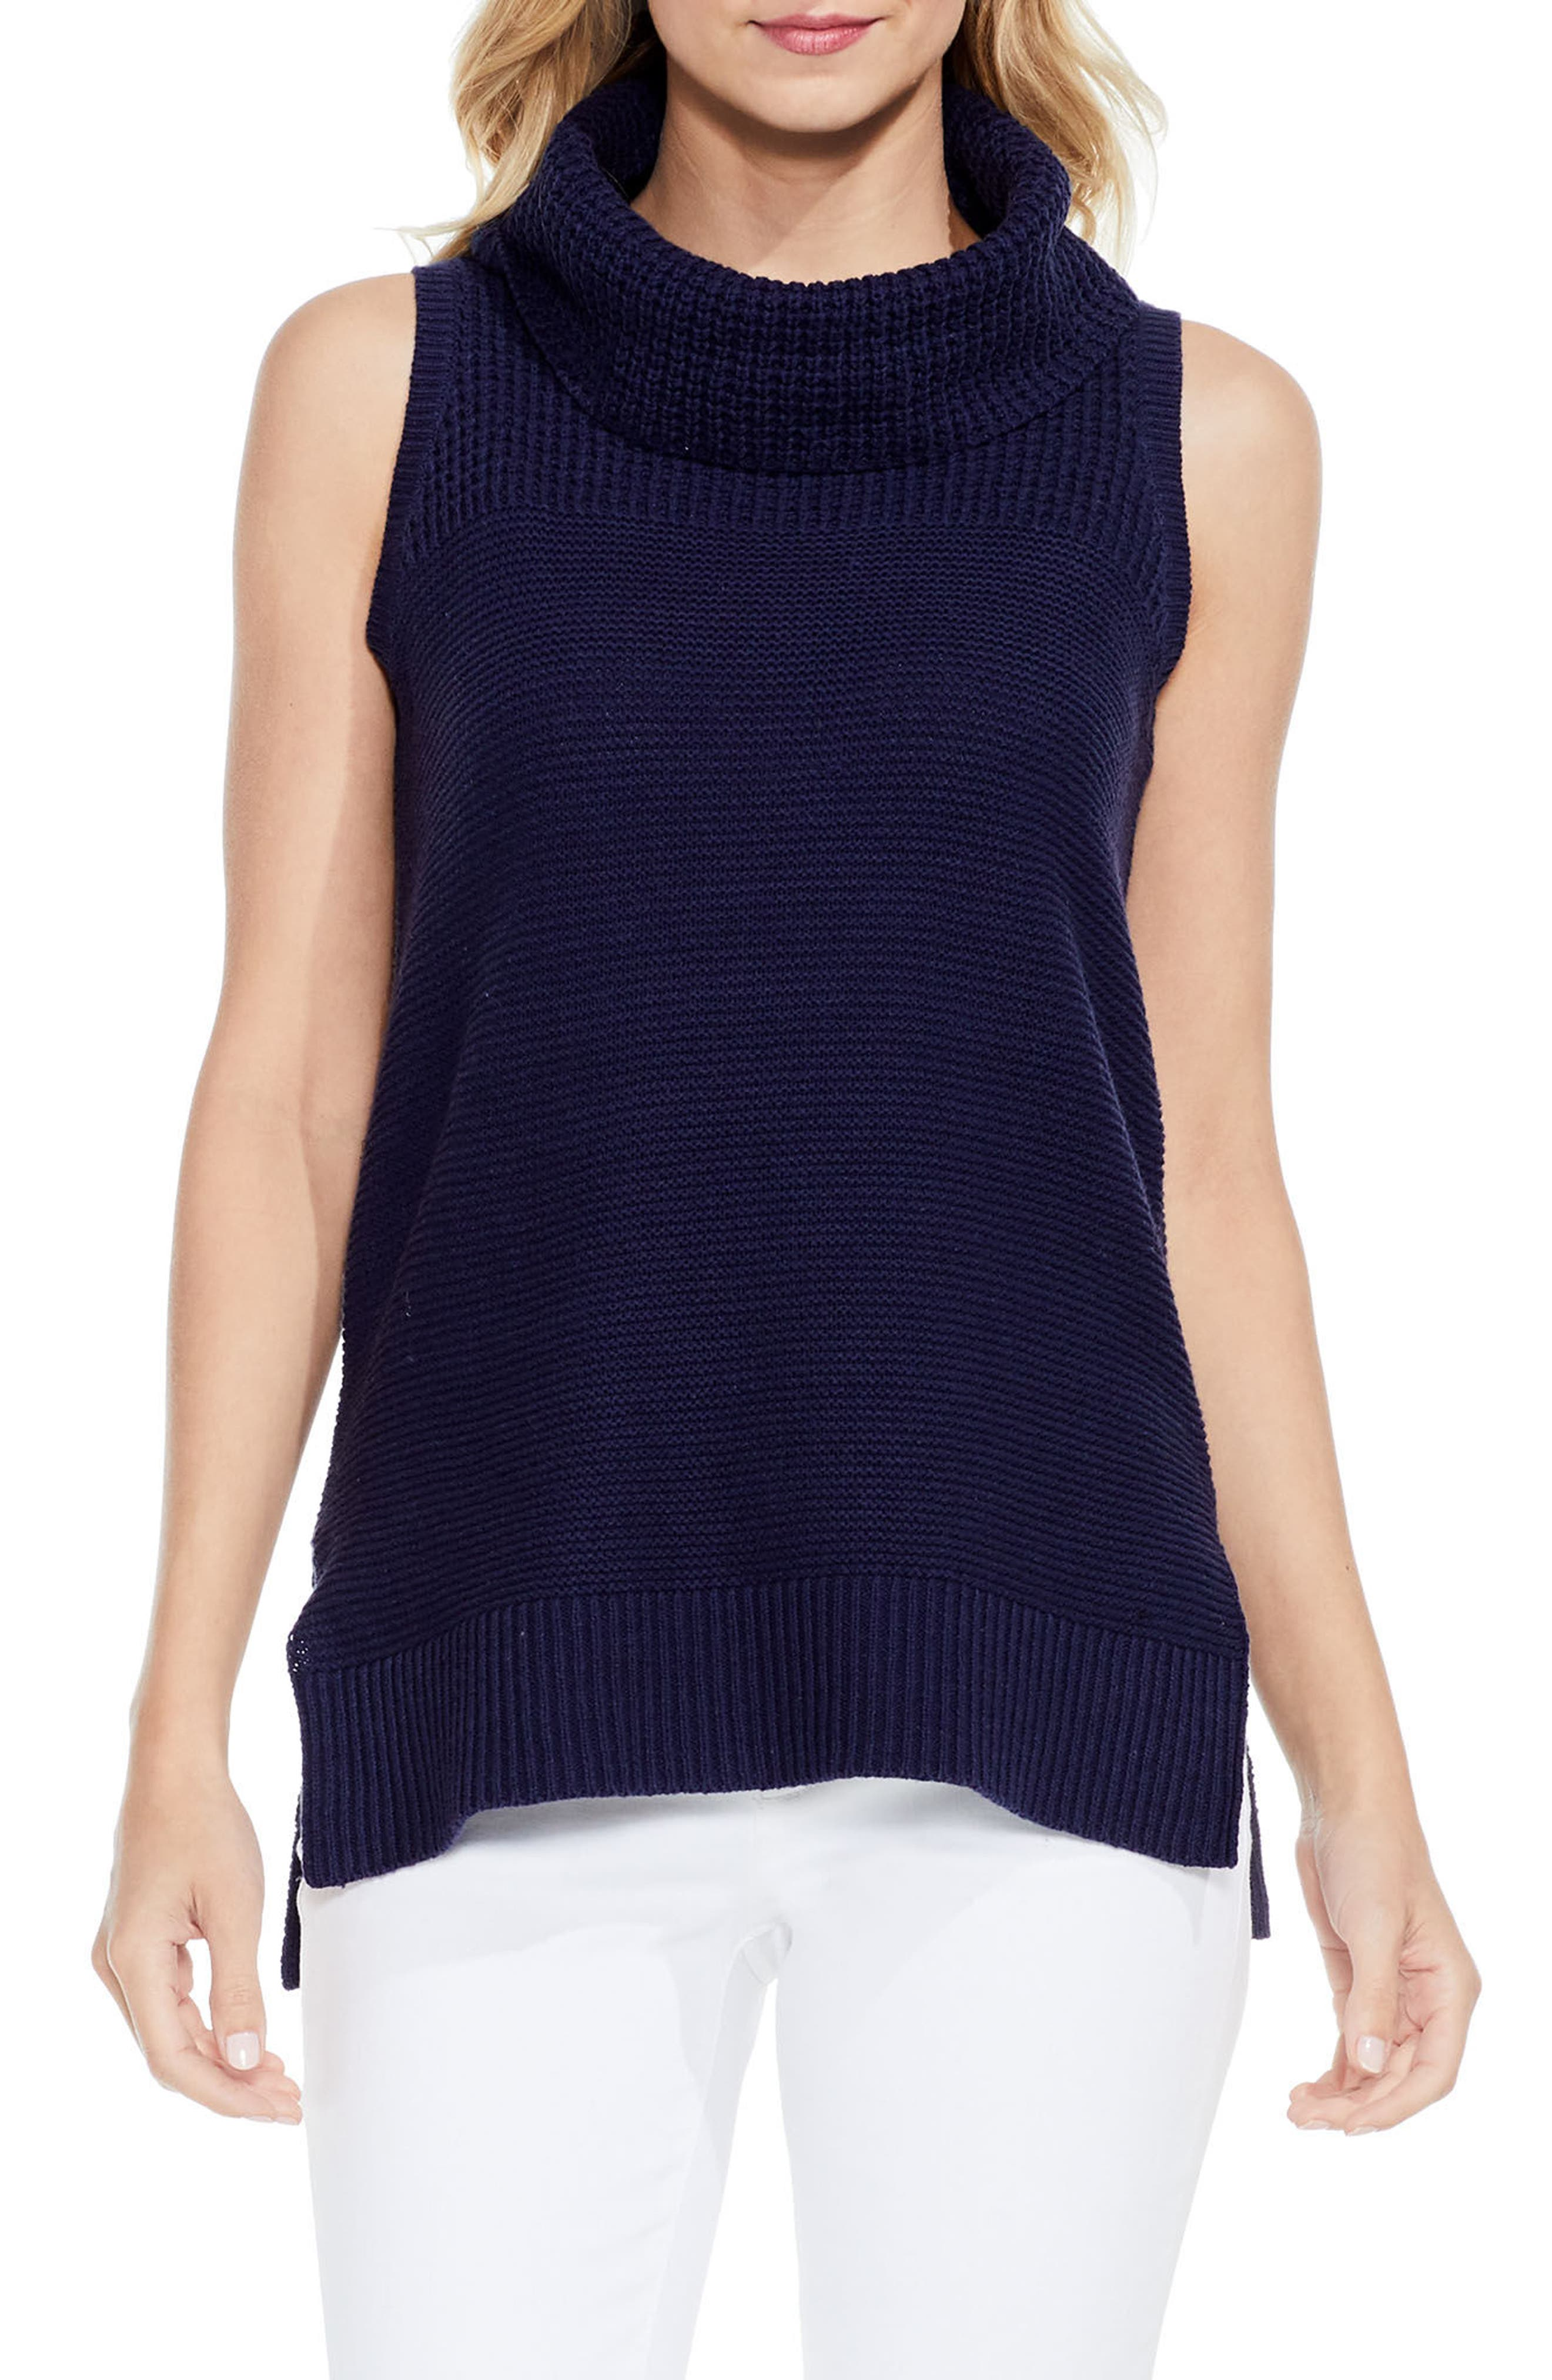 Main Image - Two by Vince Camuto Sleeveless Cowl Neck Sweater